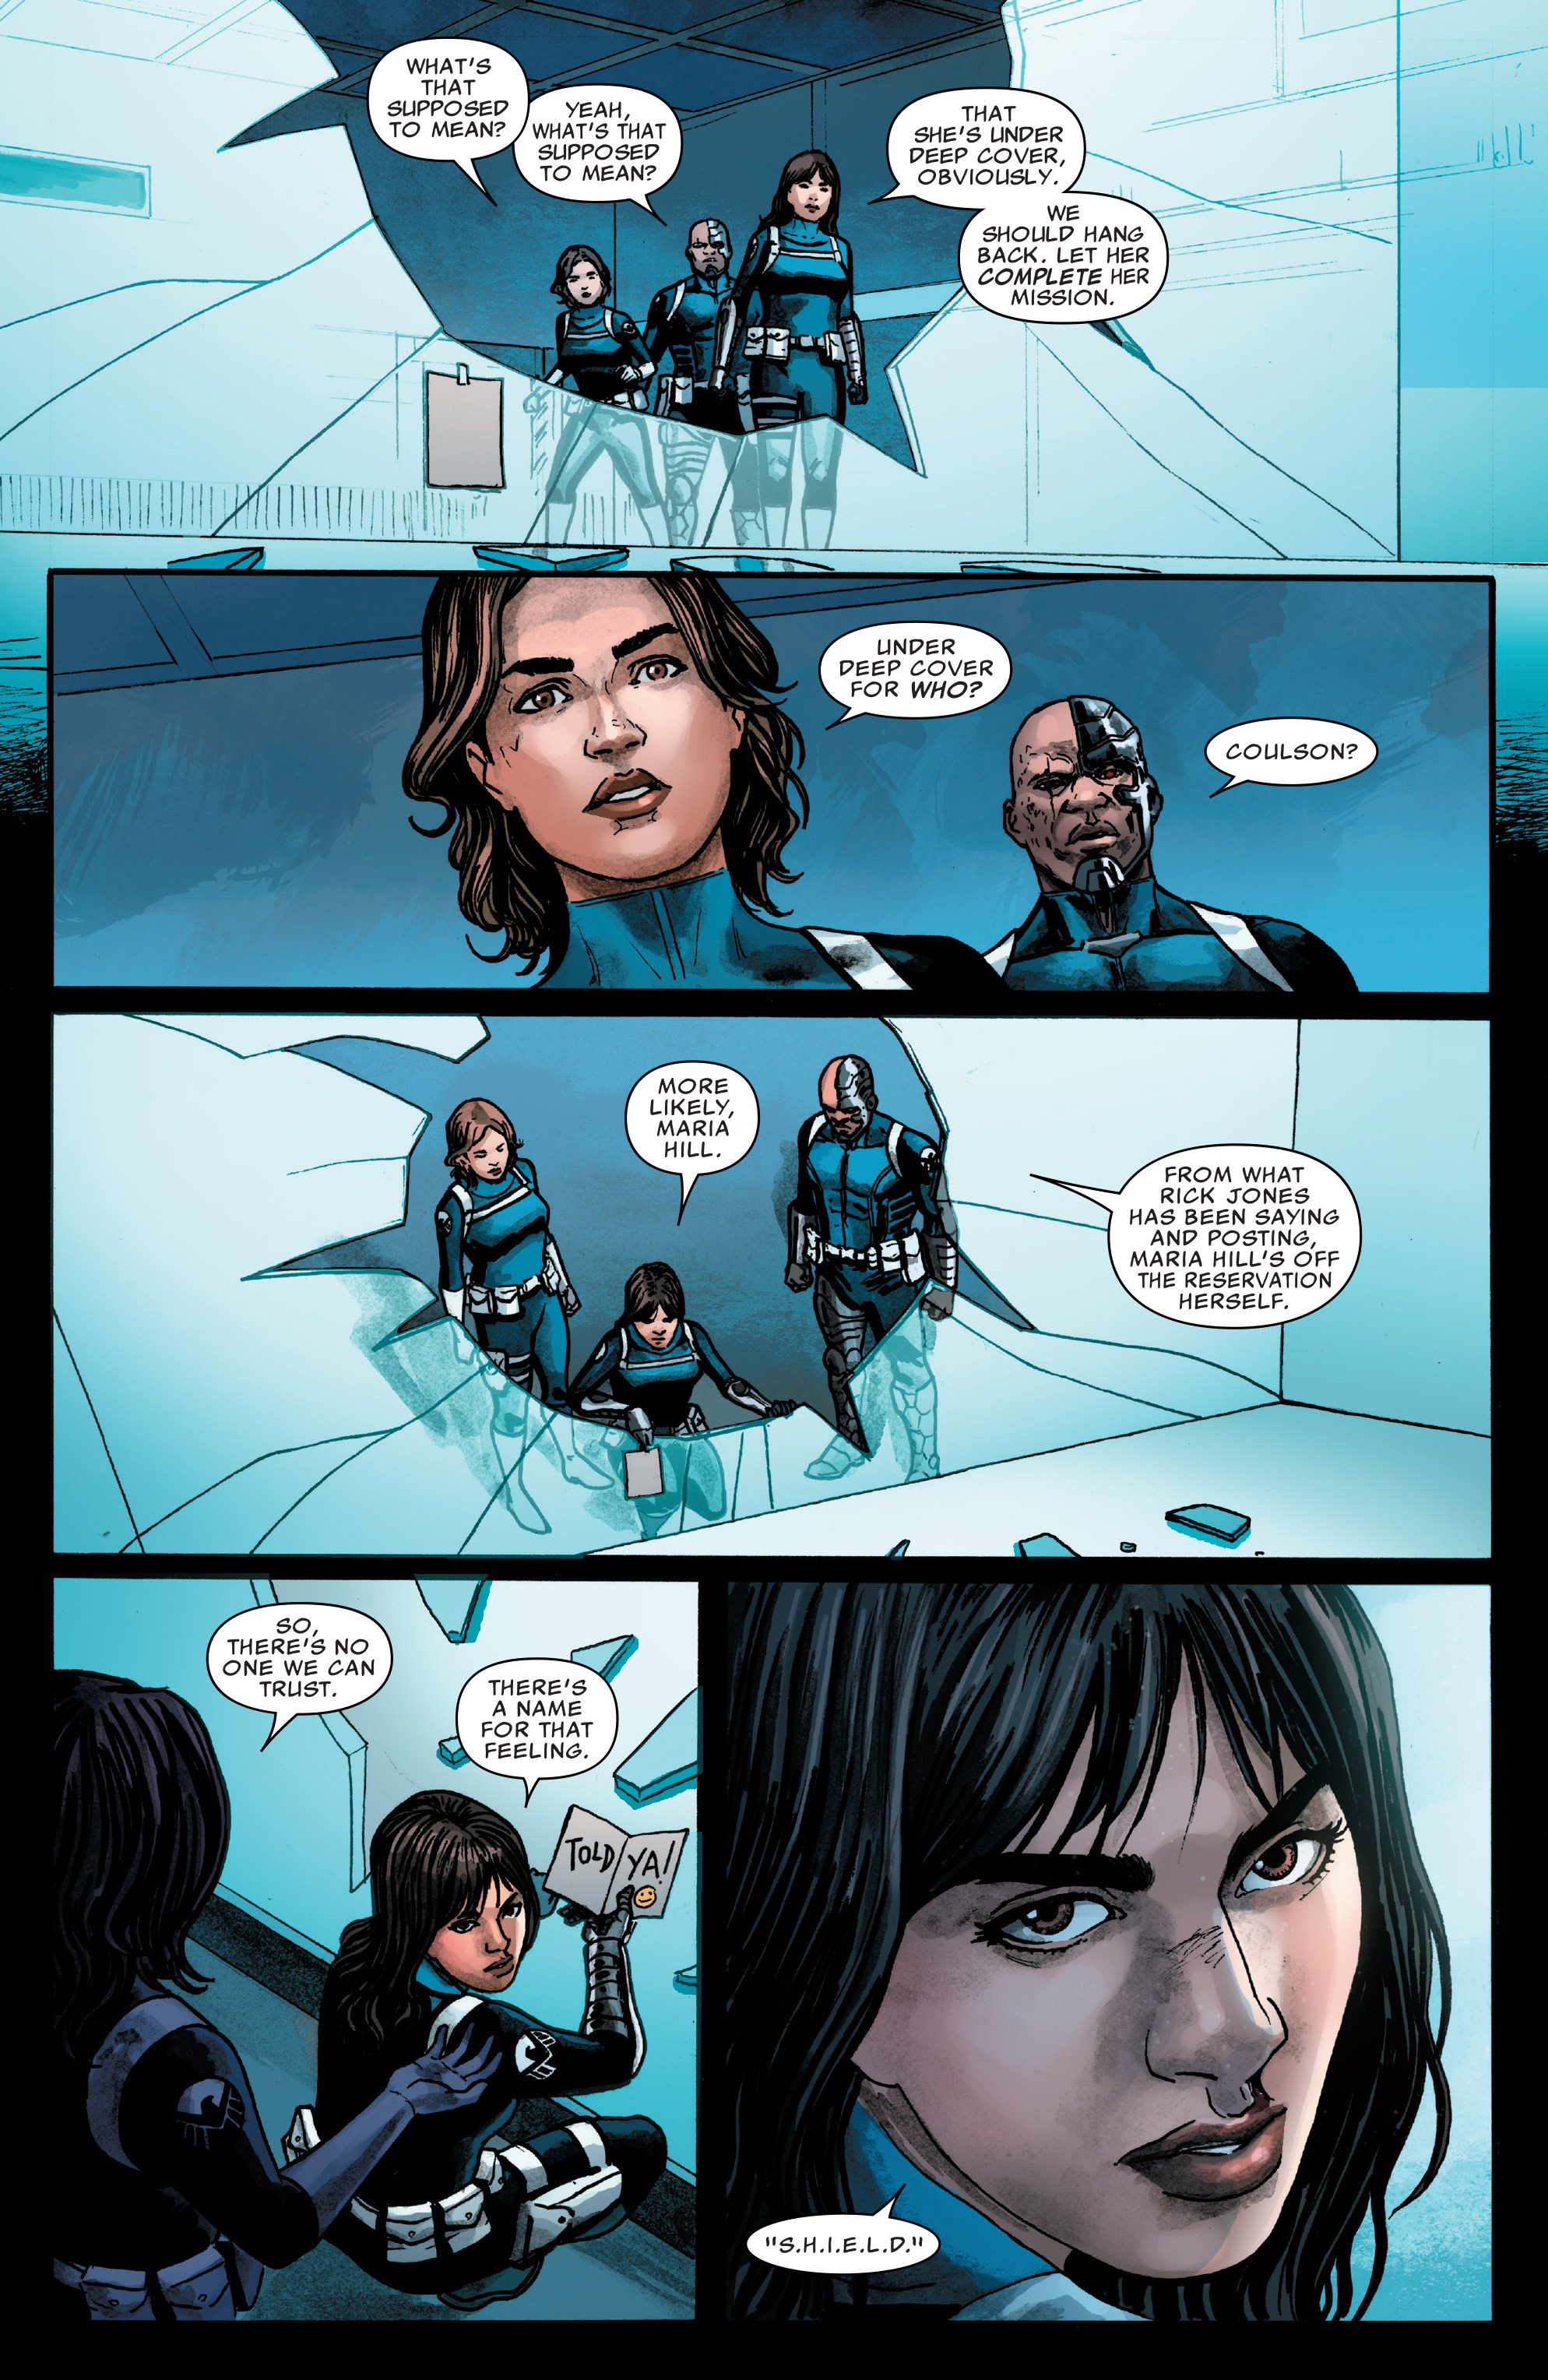 Read online Agents of S.H.I.E.L.D. comic -  Issue #4 - 19